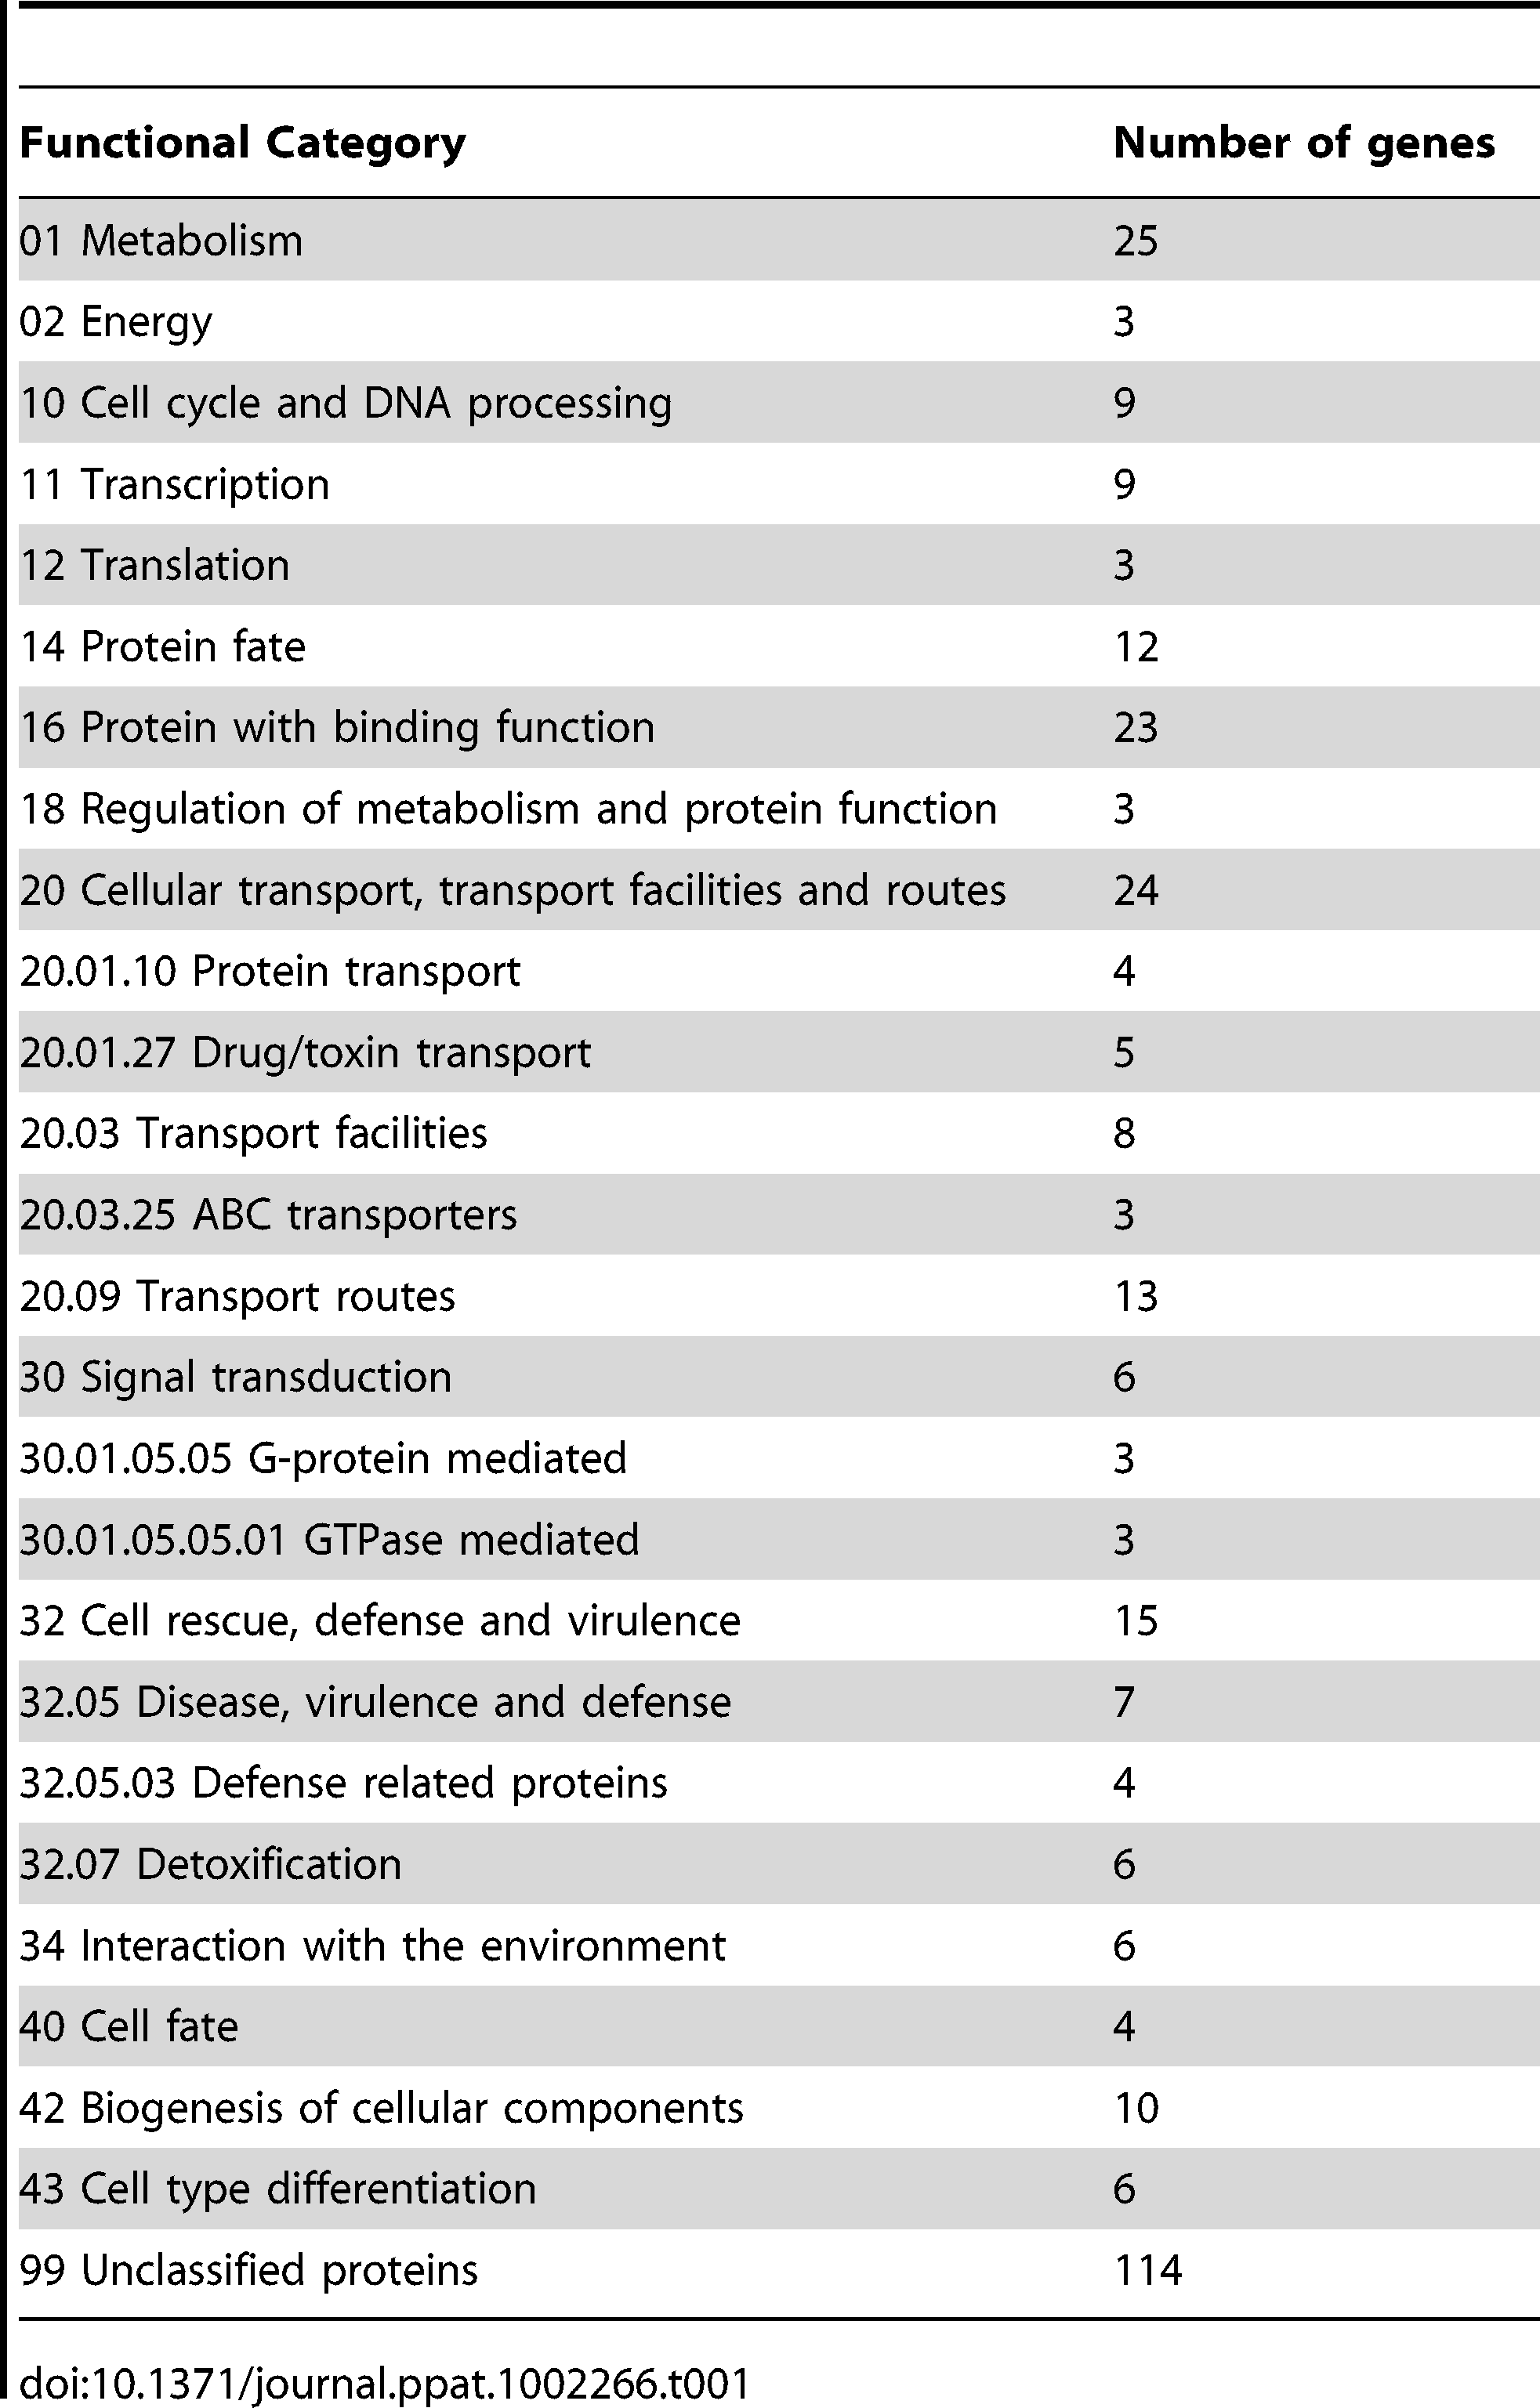 Tri6 targets summarized by functional categories.